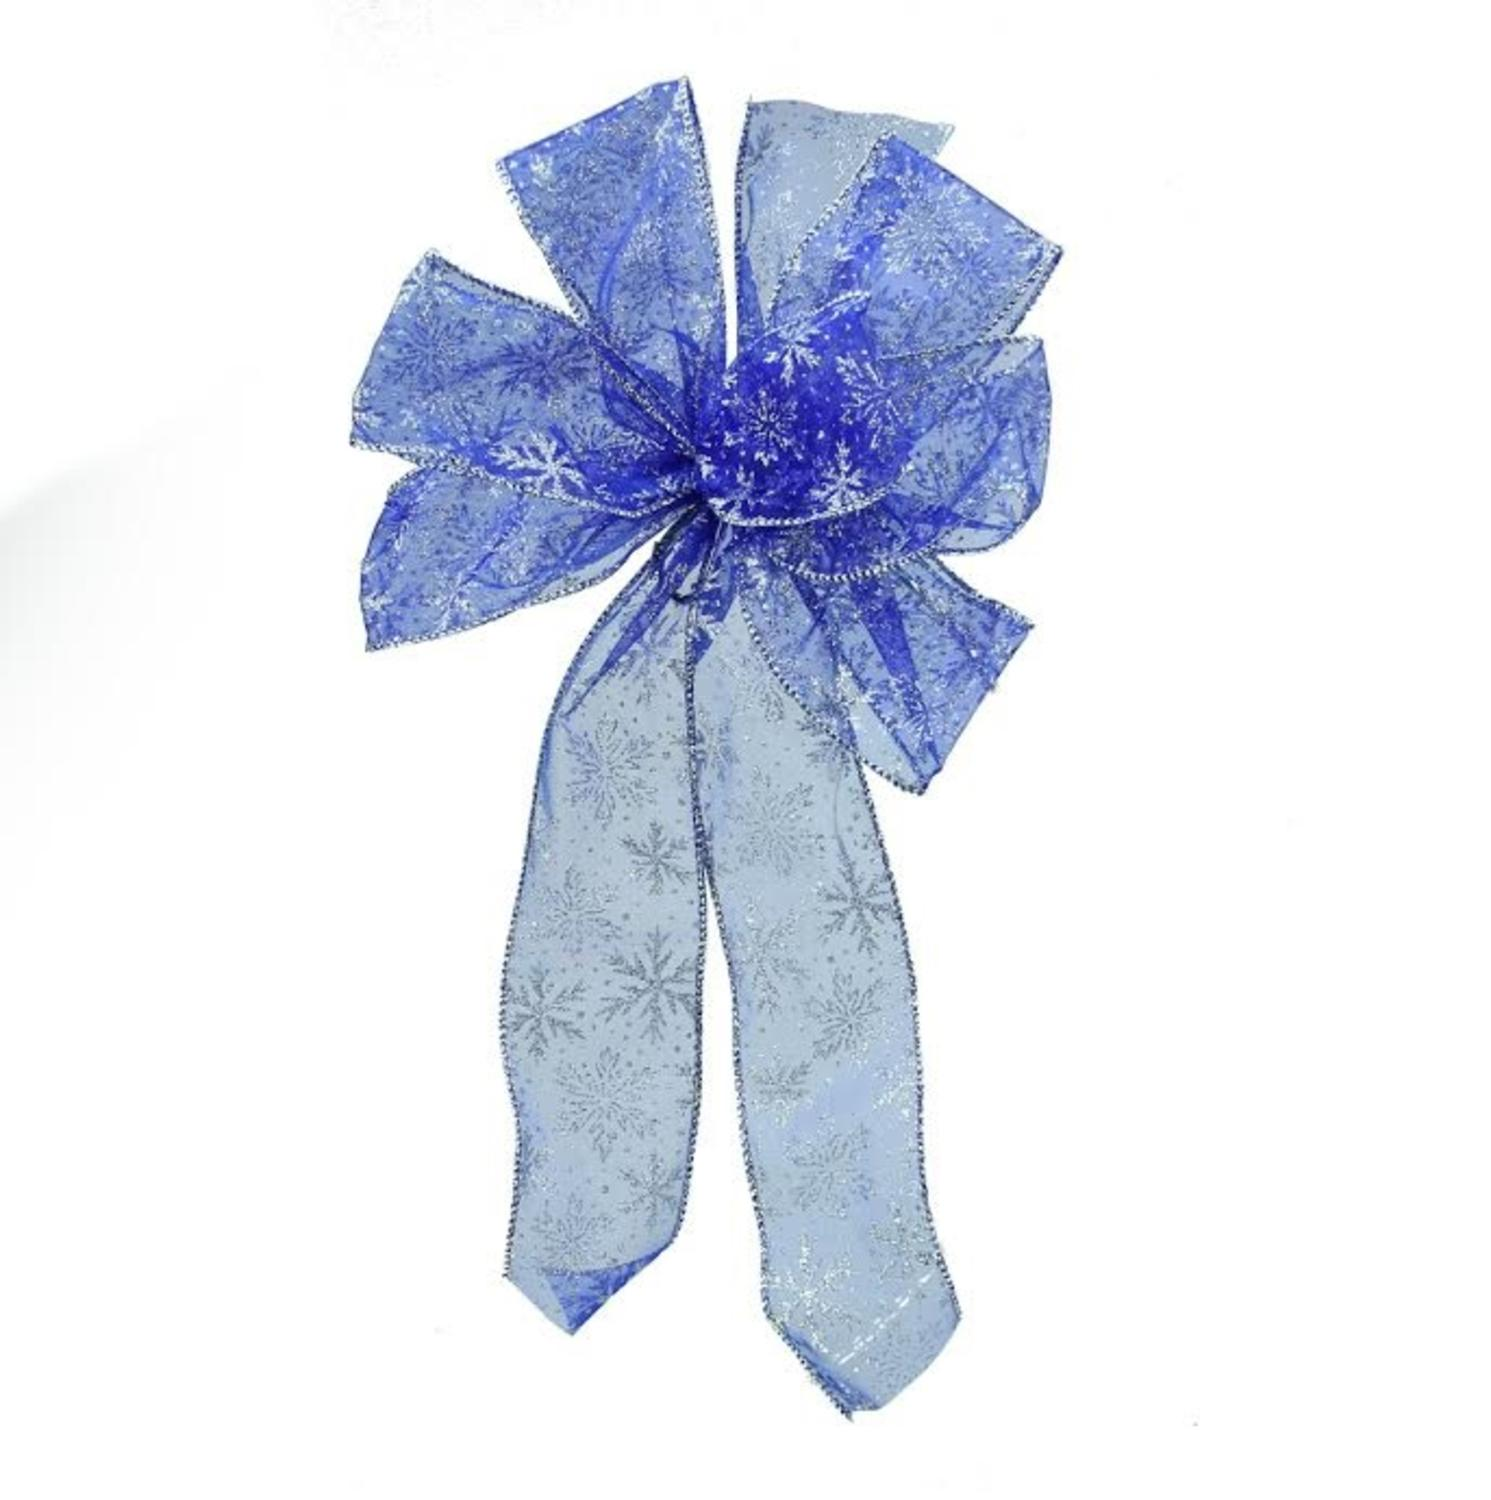 "8"" x 16"" Sheer Blue with Sparkling Snowflakes 6 Loop Bow Decoration"